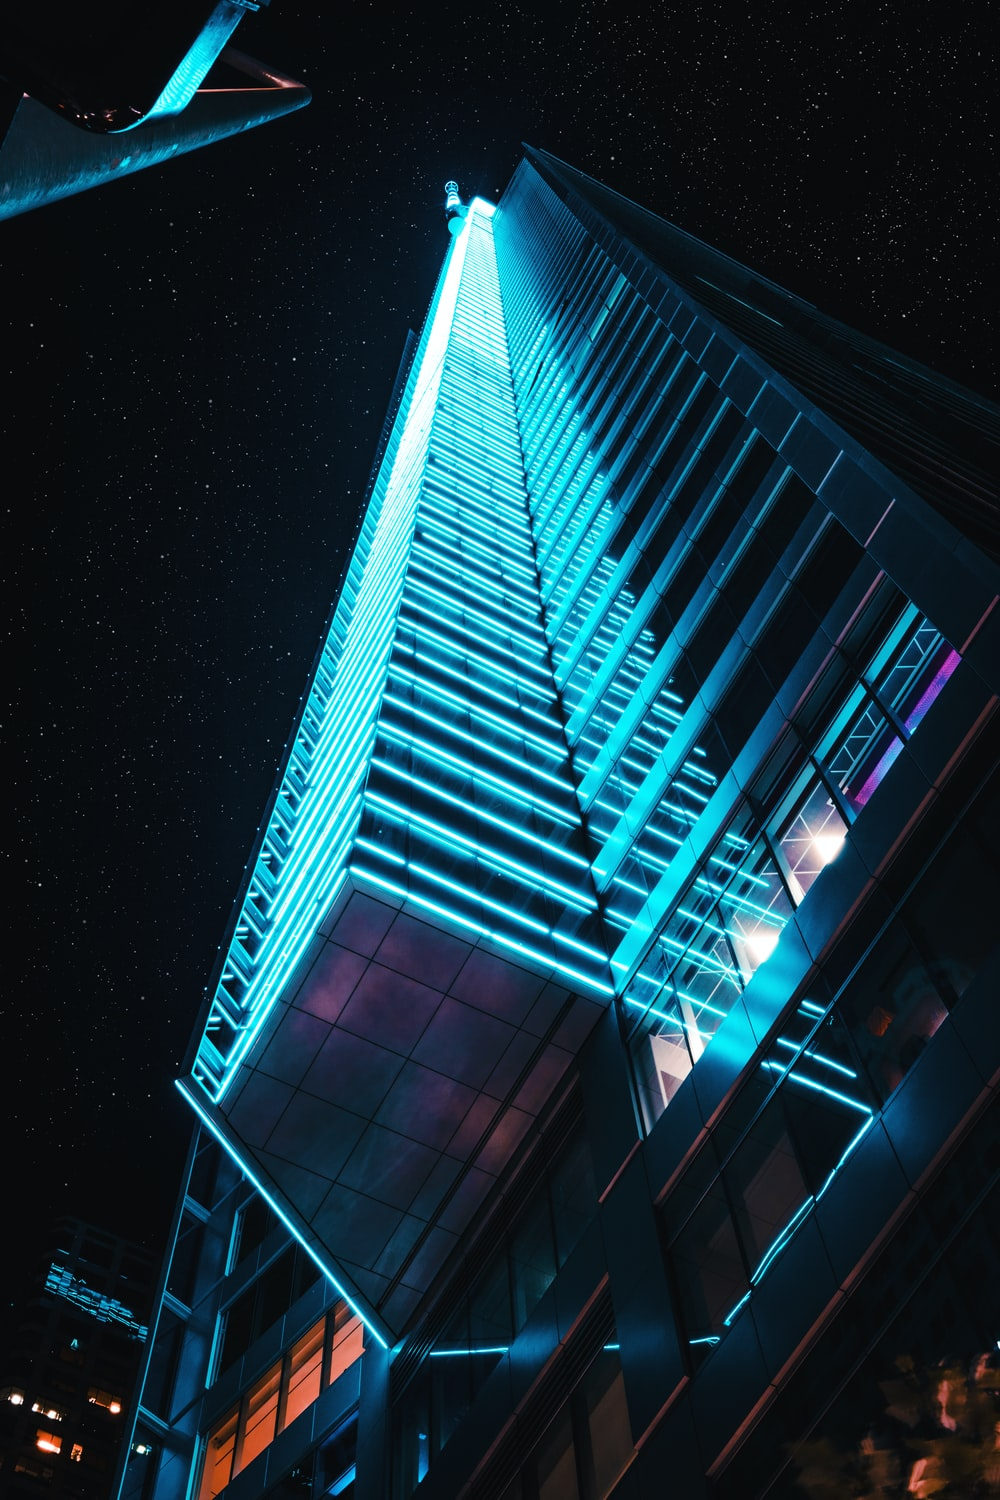 Black Aesthetic Images Neon Neon Aesthetic 37 Best Free Neon Light City And Building Photos On Unsplash neon aesthetic 37 best free neon